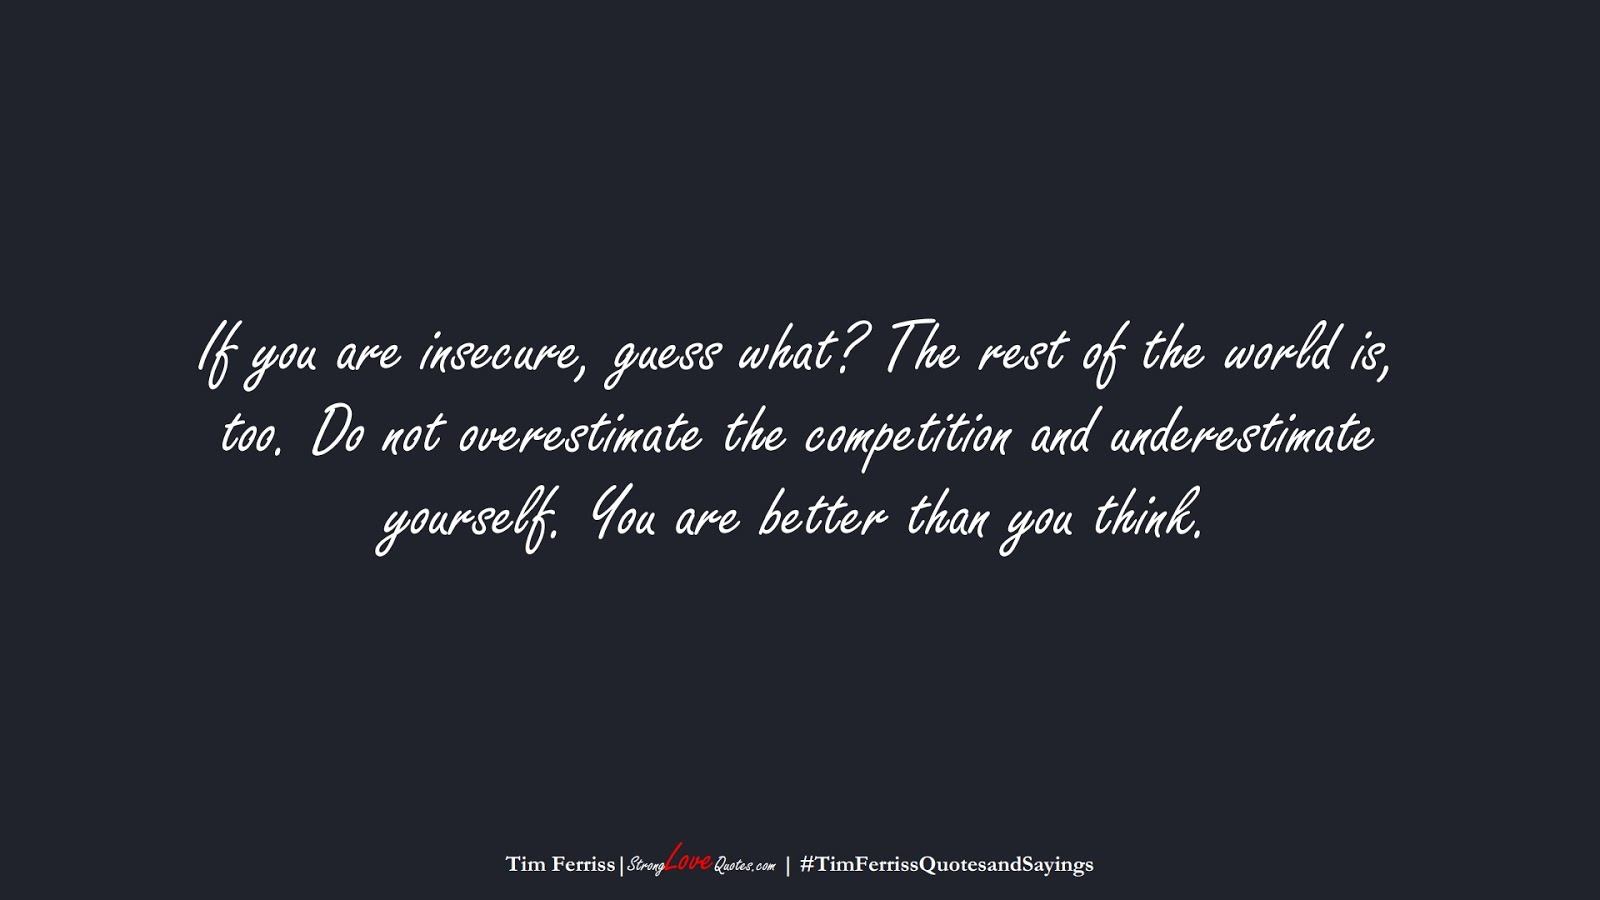 If you are insecure, guess what? The rest of the world is, too. Do not overestimate the competition and underestimate yourself. You are better than you think. (Tim Ferriss);  #TimFerrissQuotesandSayings